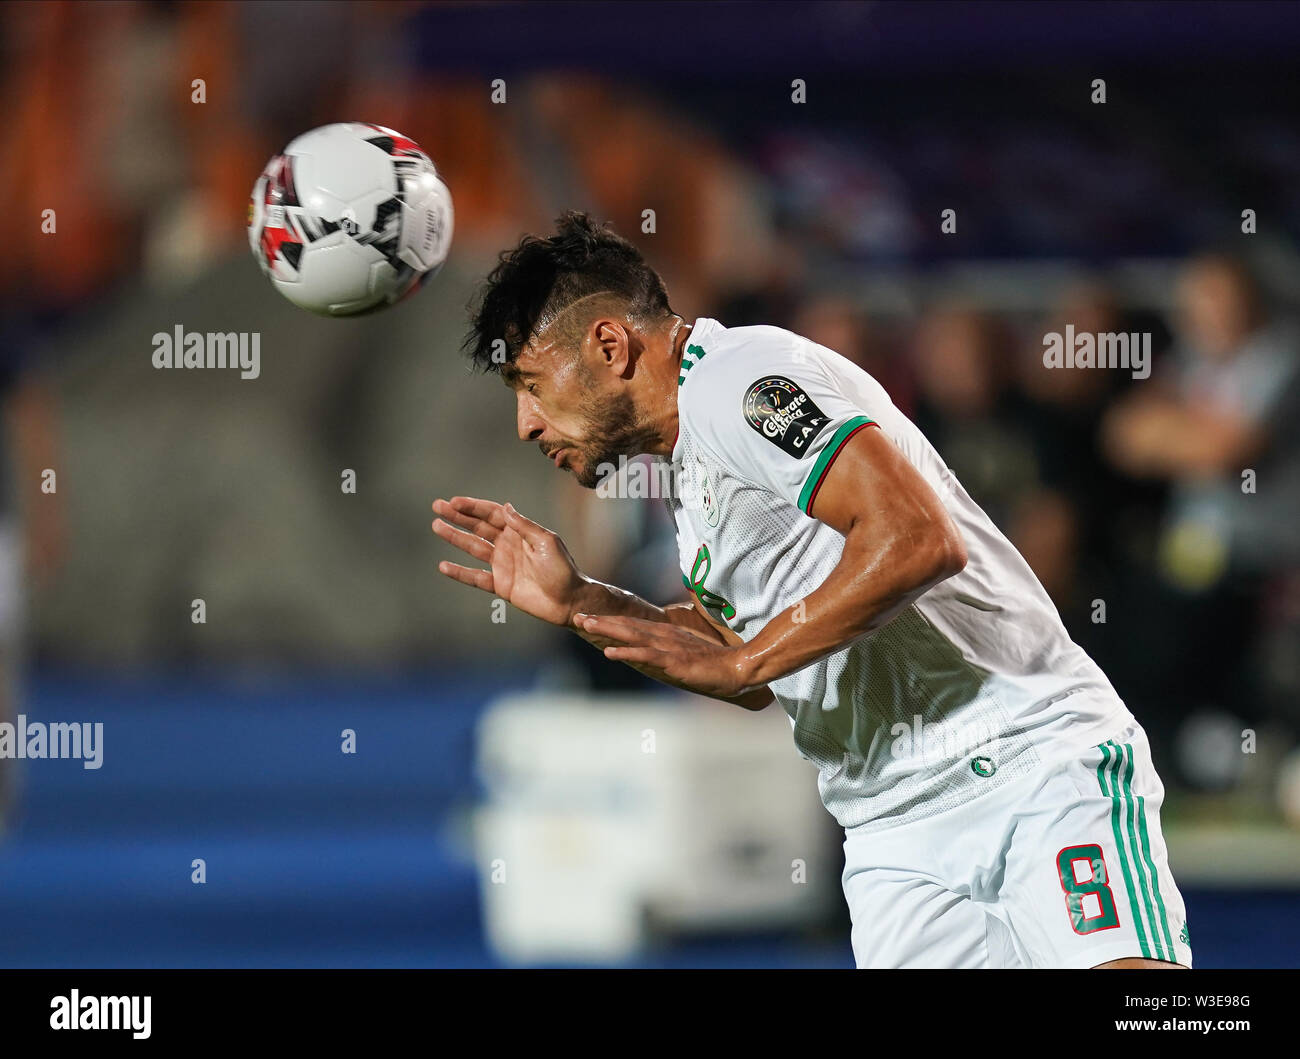 Cairo, Algeria, Egypt. 14th July, 2019. FRANCE OUT July 14, 2019: Mohamed Youcef Belaili of Algeria during the 2019 African Cup of Nations match between Algeria and Nigeria at the Cairo International Stadium in Cairo, Egypt. Ulrik Pedersen/CSM/Alamy Live News - Stock Image